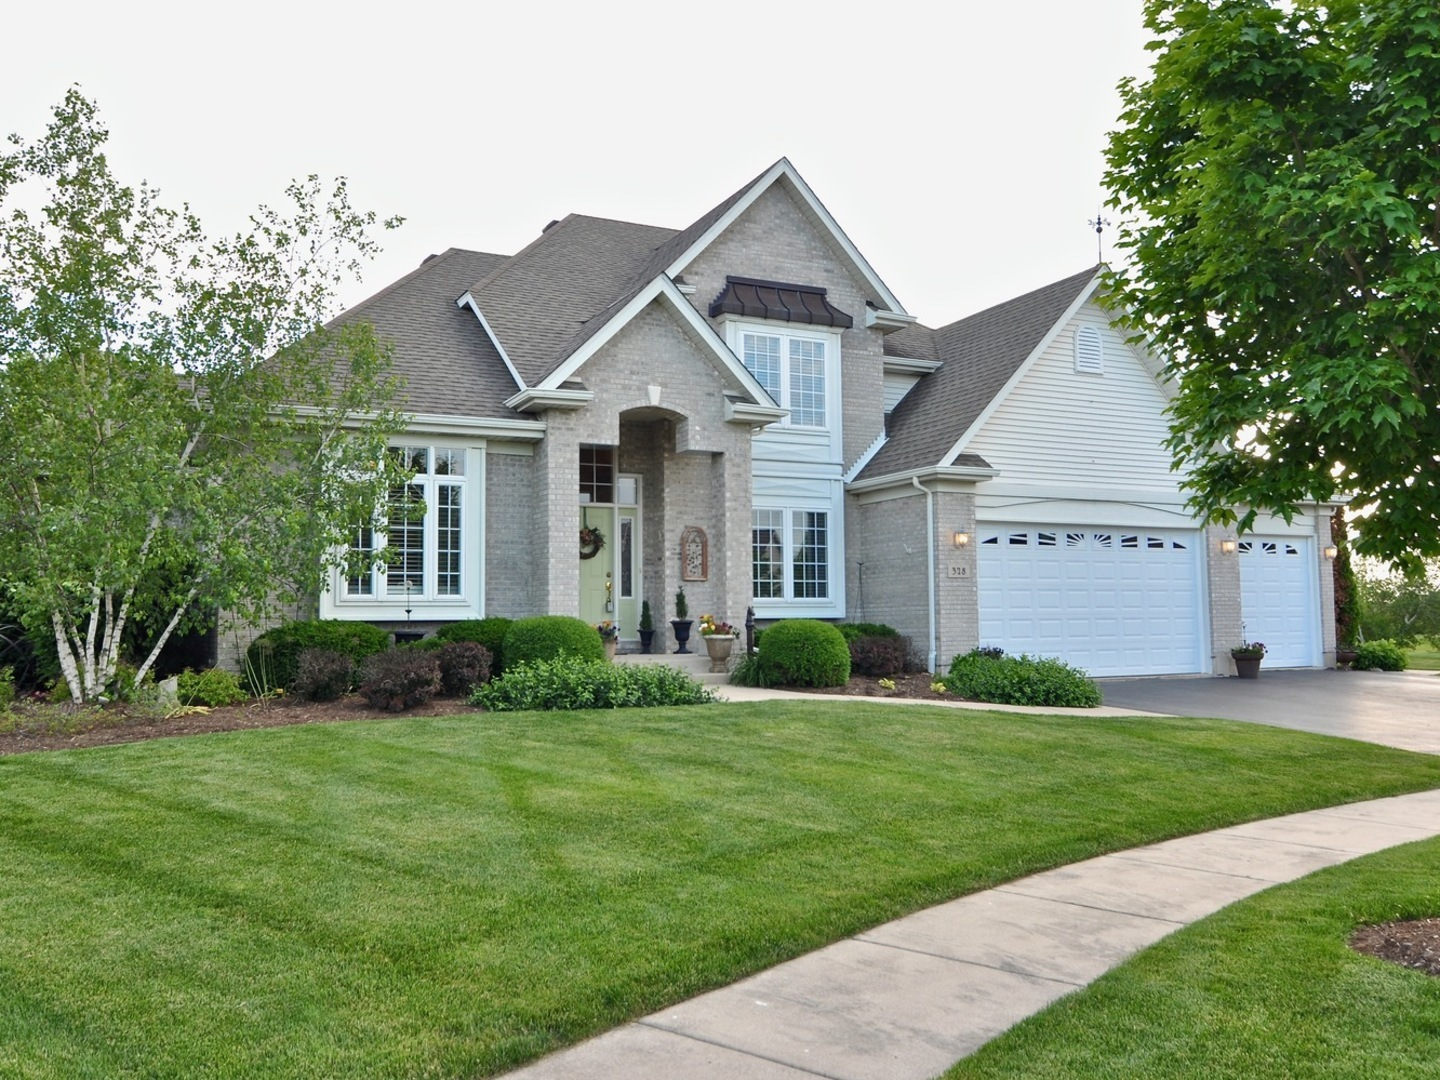 Photo for 328 Eli Barnes Court, Sycamore, IL 60178 (MLS # 10633899)